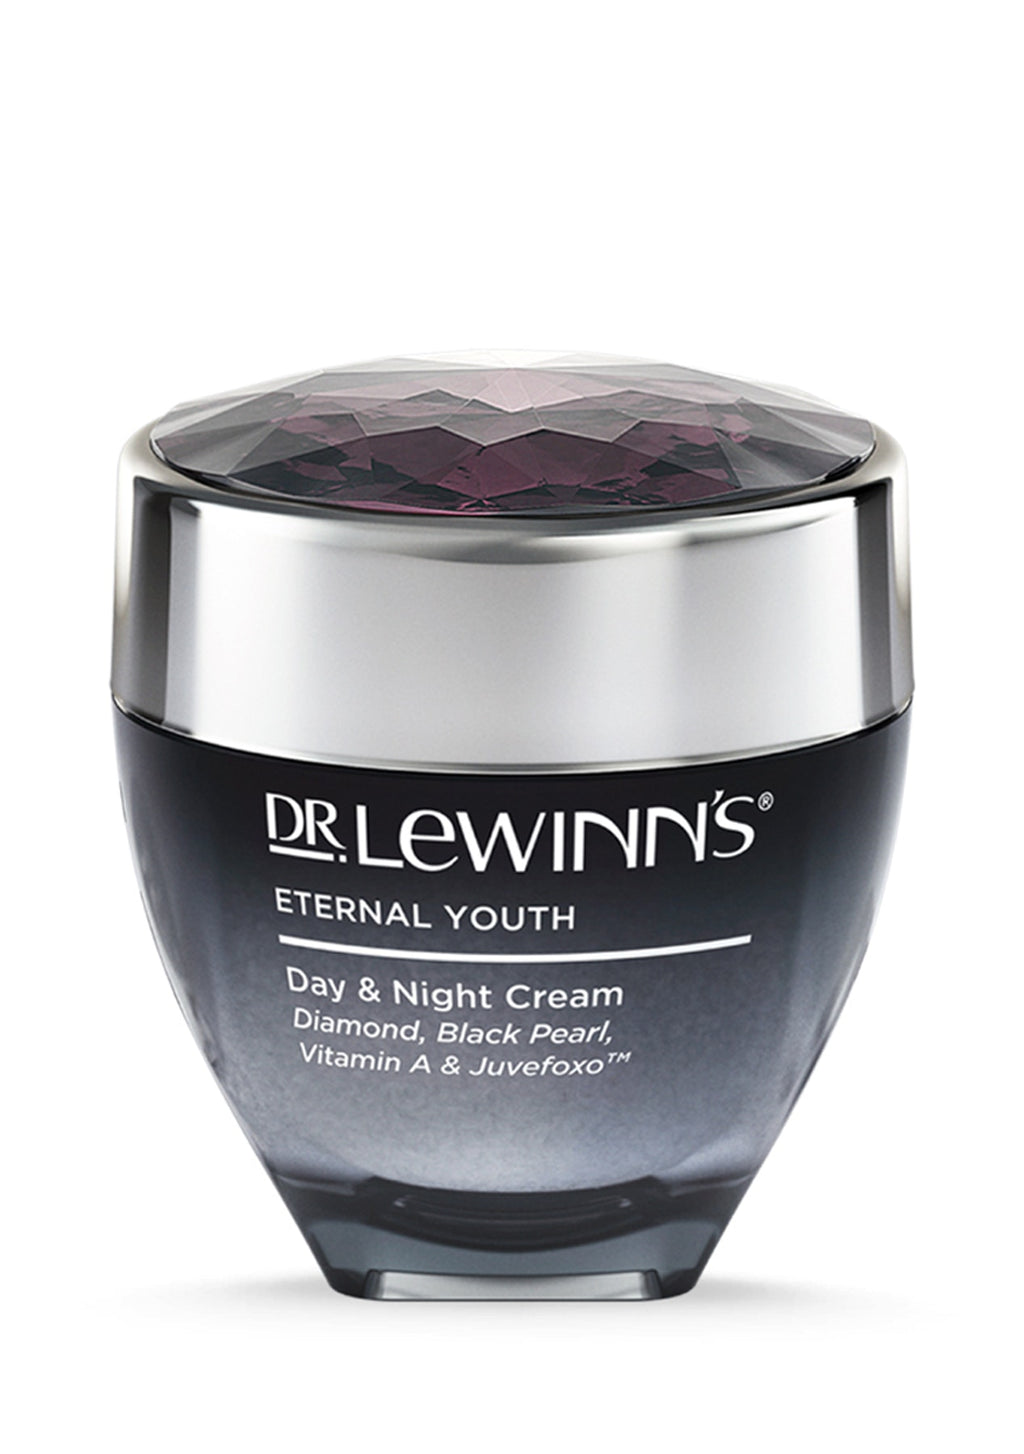 Dr Lewinns Eternal Youth Day & Night Cream 50M